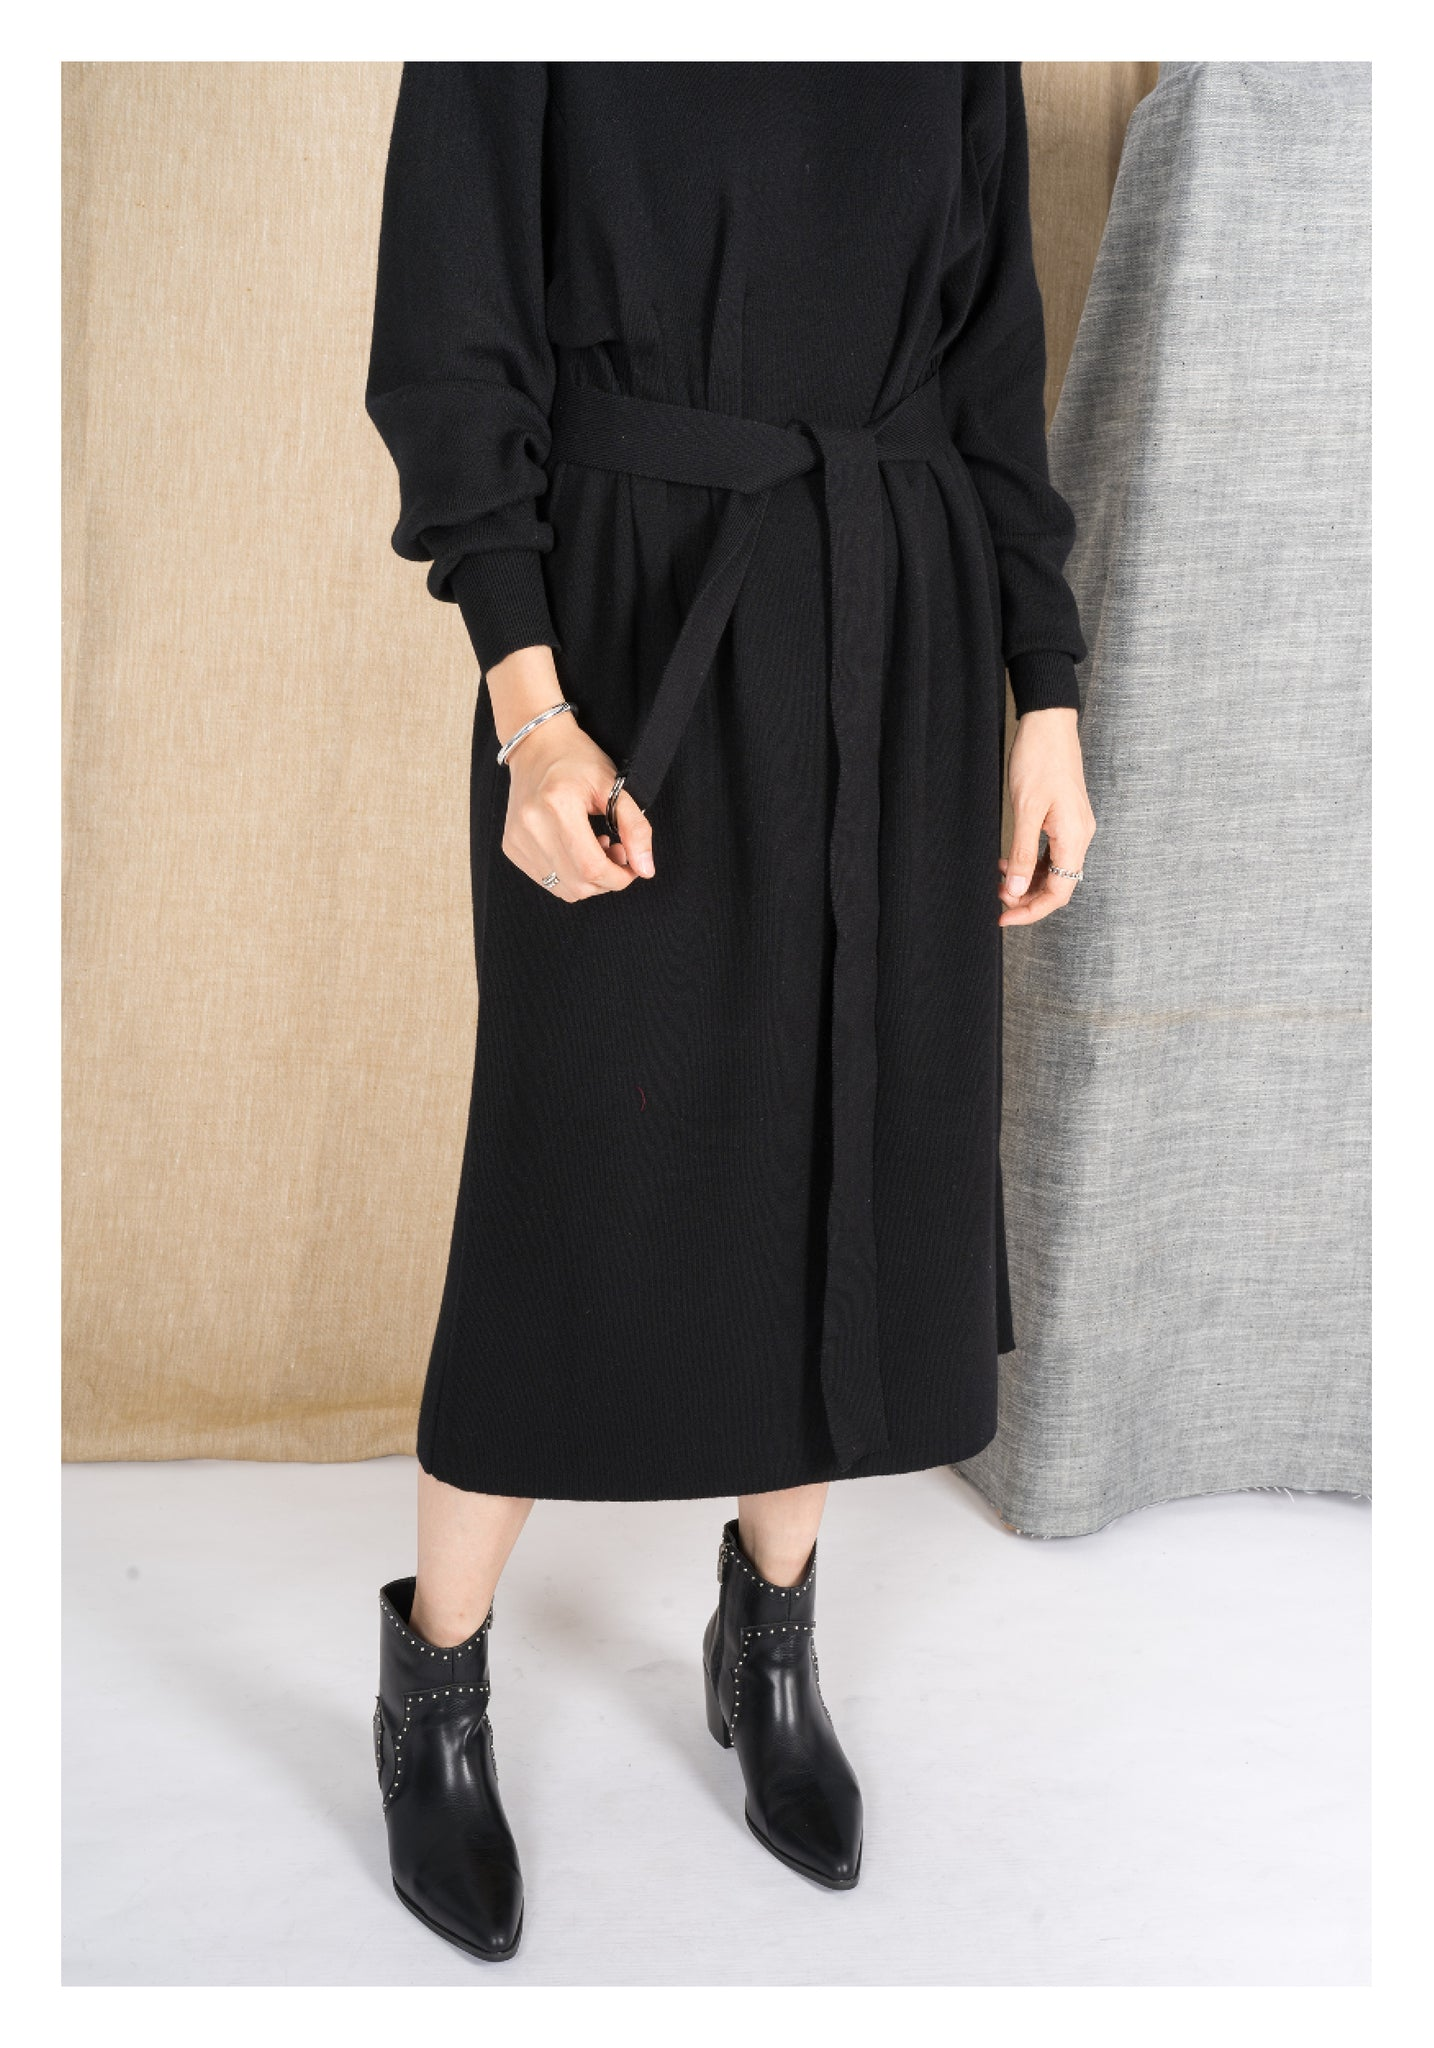 Cashmere Tie Knit Dress Black